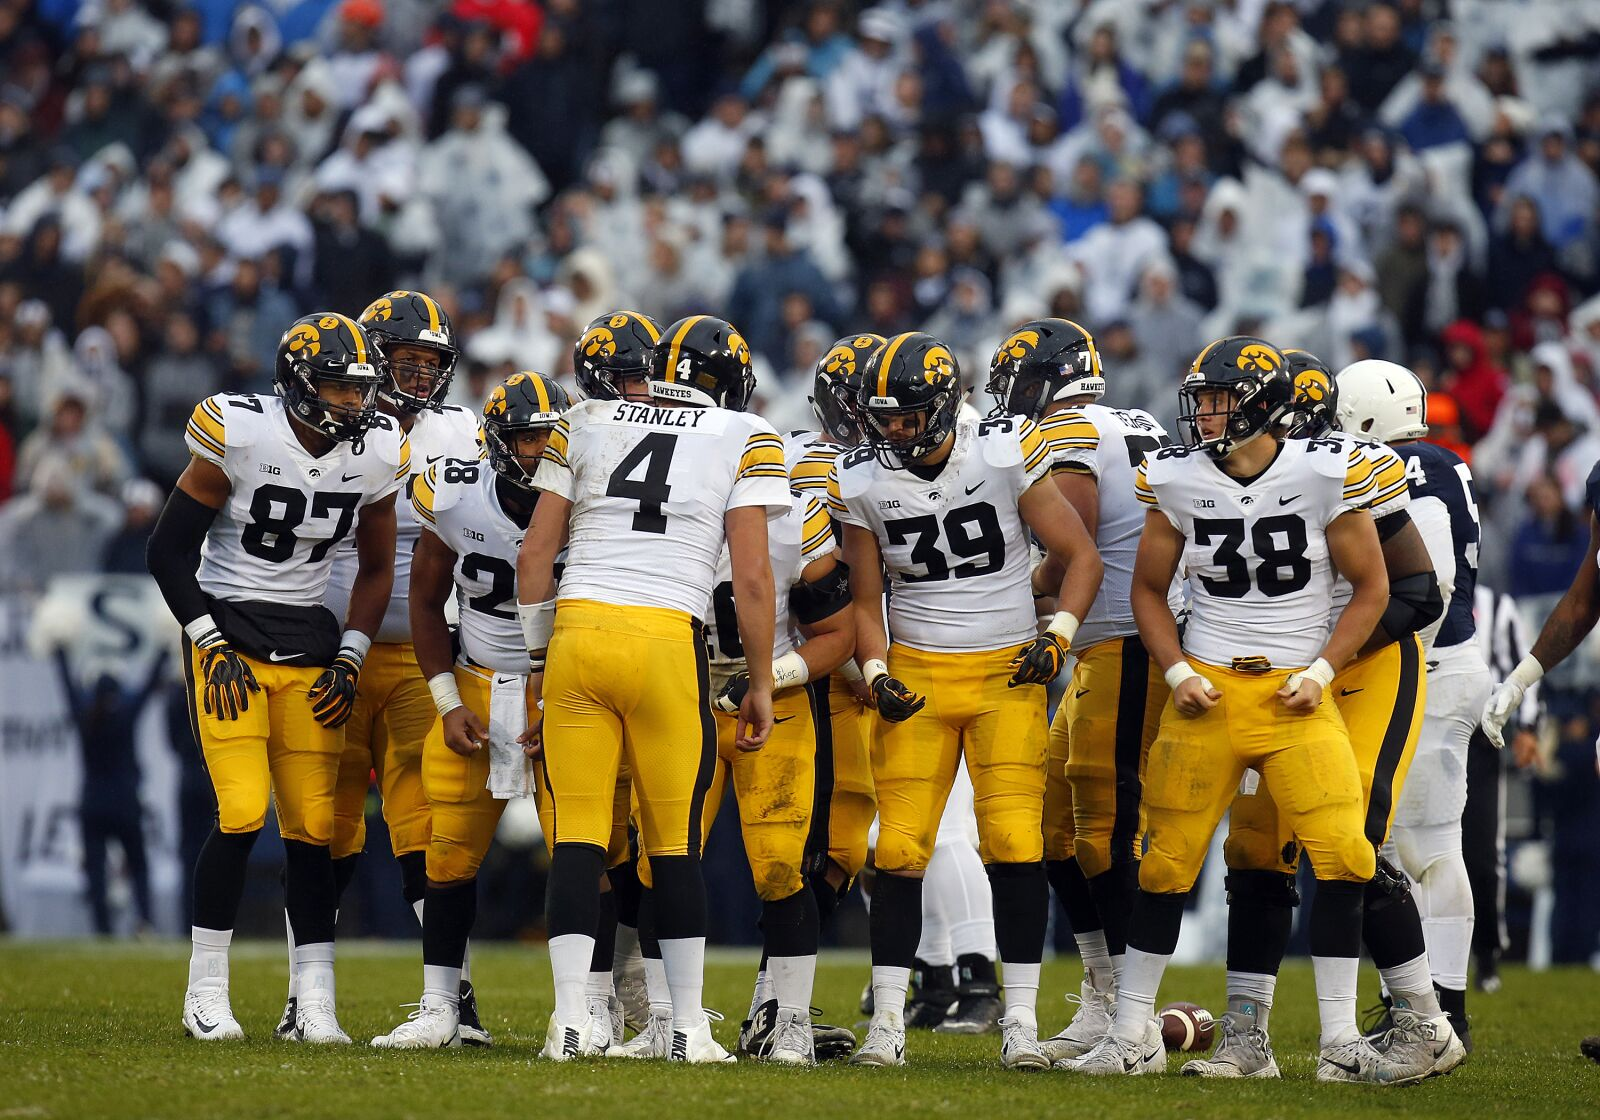 Who is replacing TJ Hockenson and Noah Fant for Iowa?